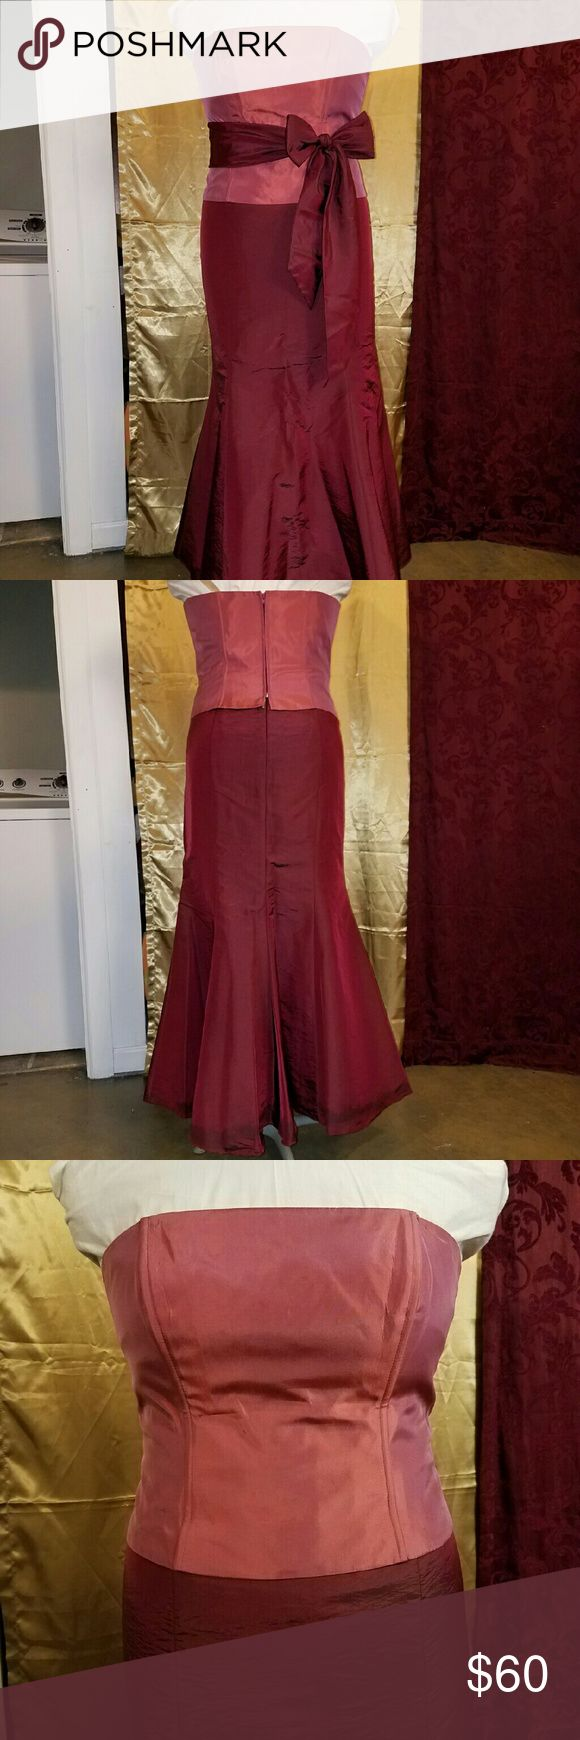 Size 16 David's Bridal two-piece dress Size 16 David's Bridal two-piece bridesmaid's dress. Garnet/cranberry skirt and sash, rose-colored bodice with light boning. Tulle in underskirt. All pieces are satin. David's Bridal Dresses Prom